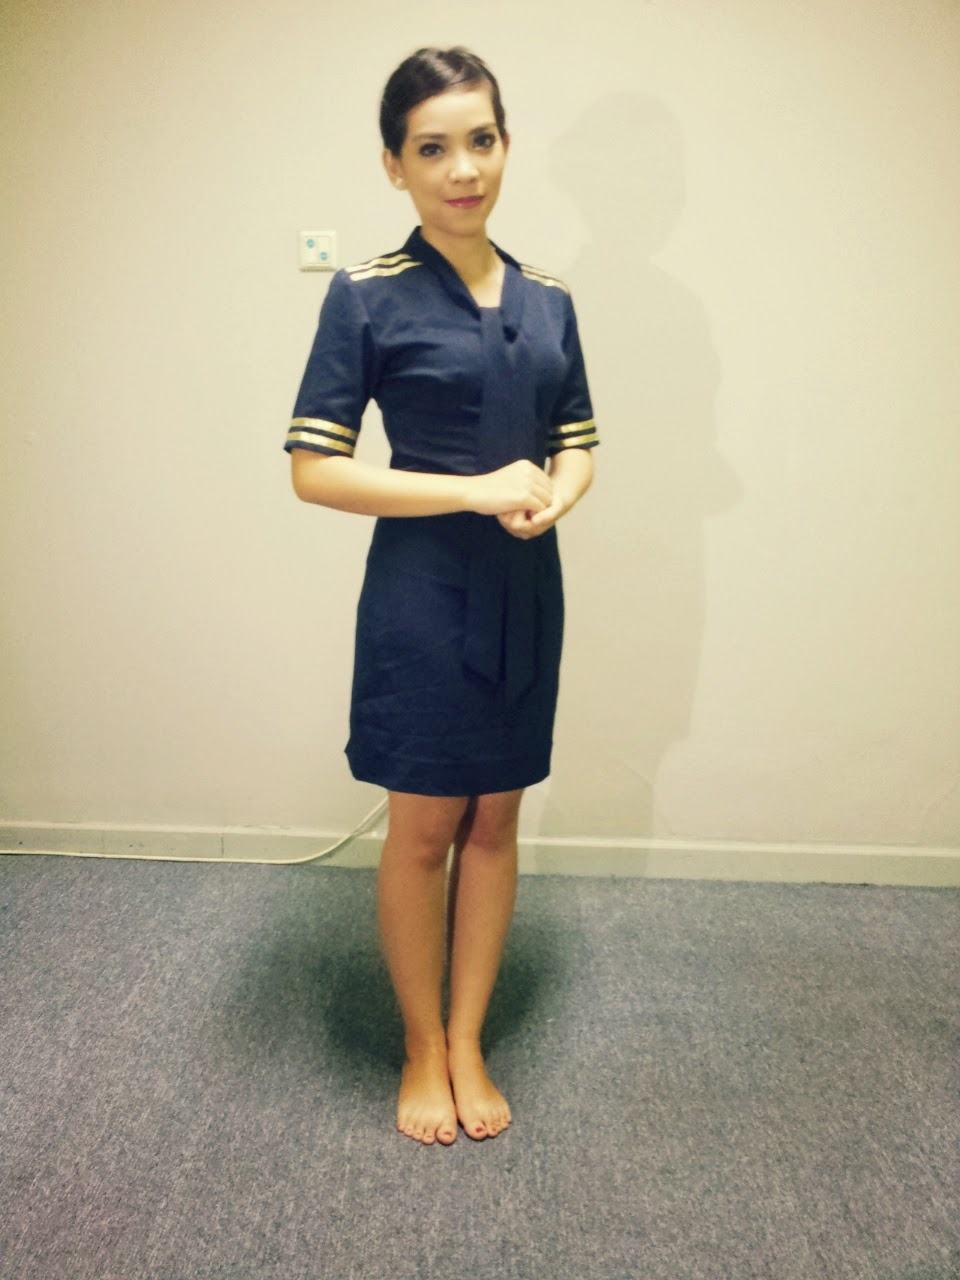 Syeline Trivena become Stewardess